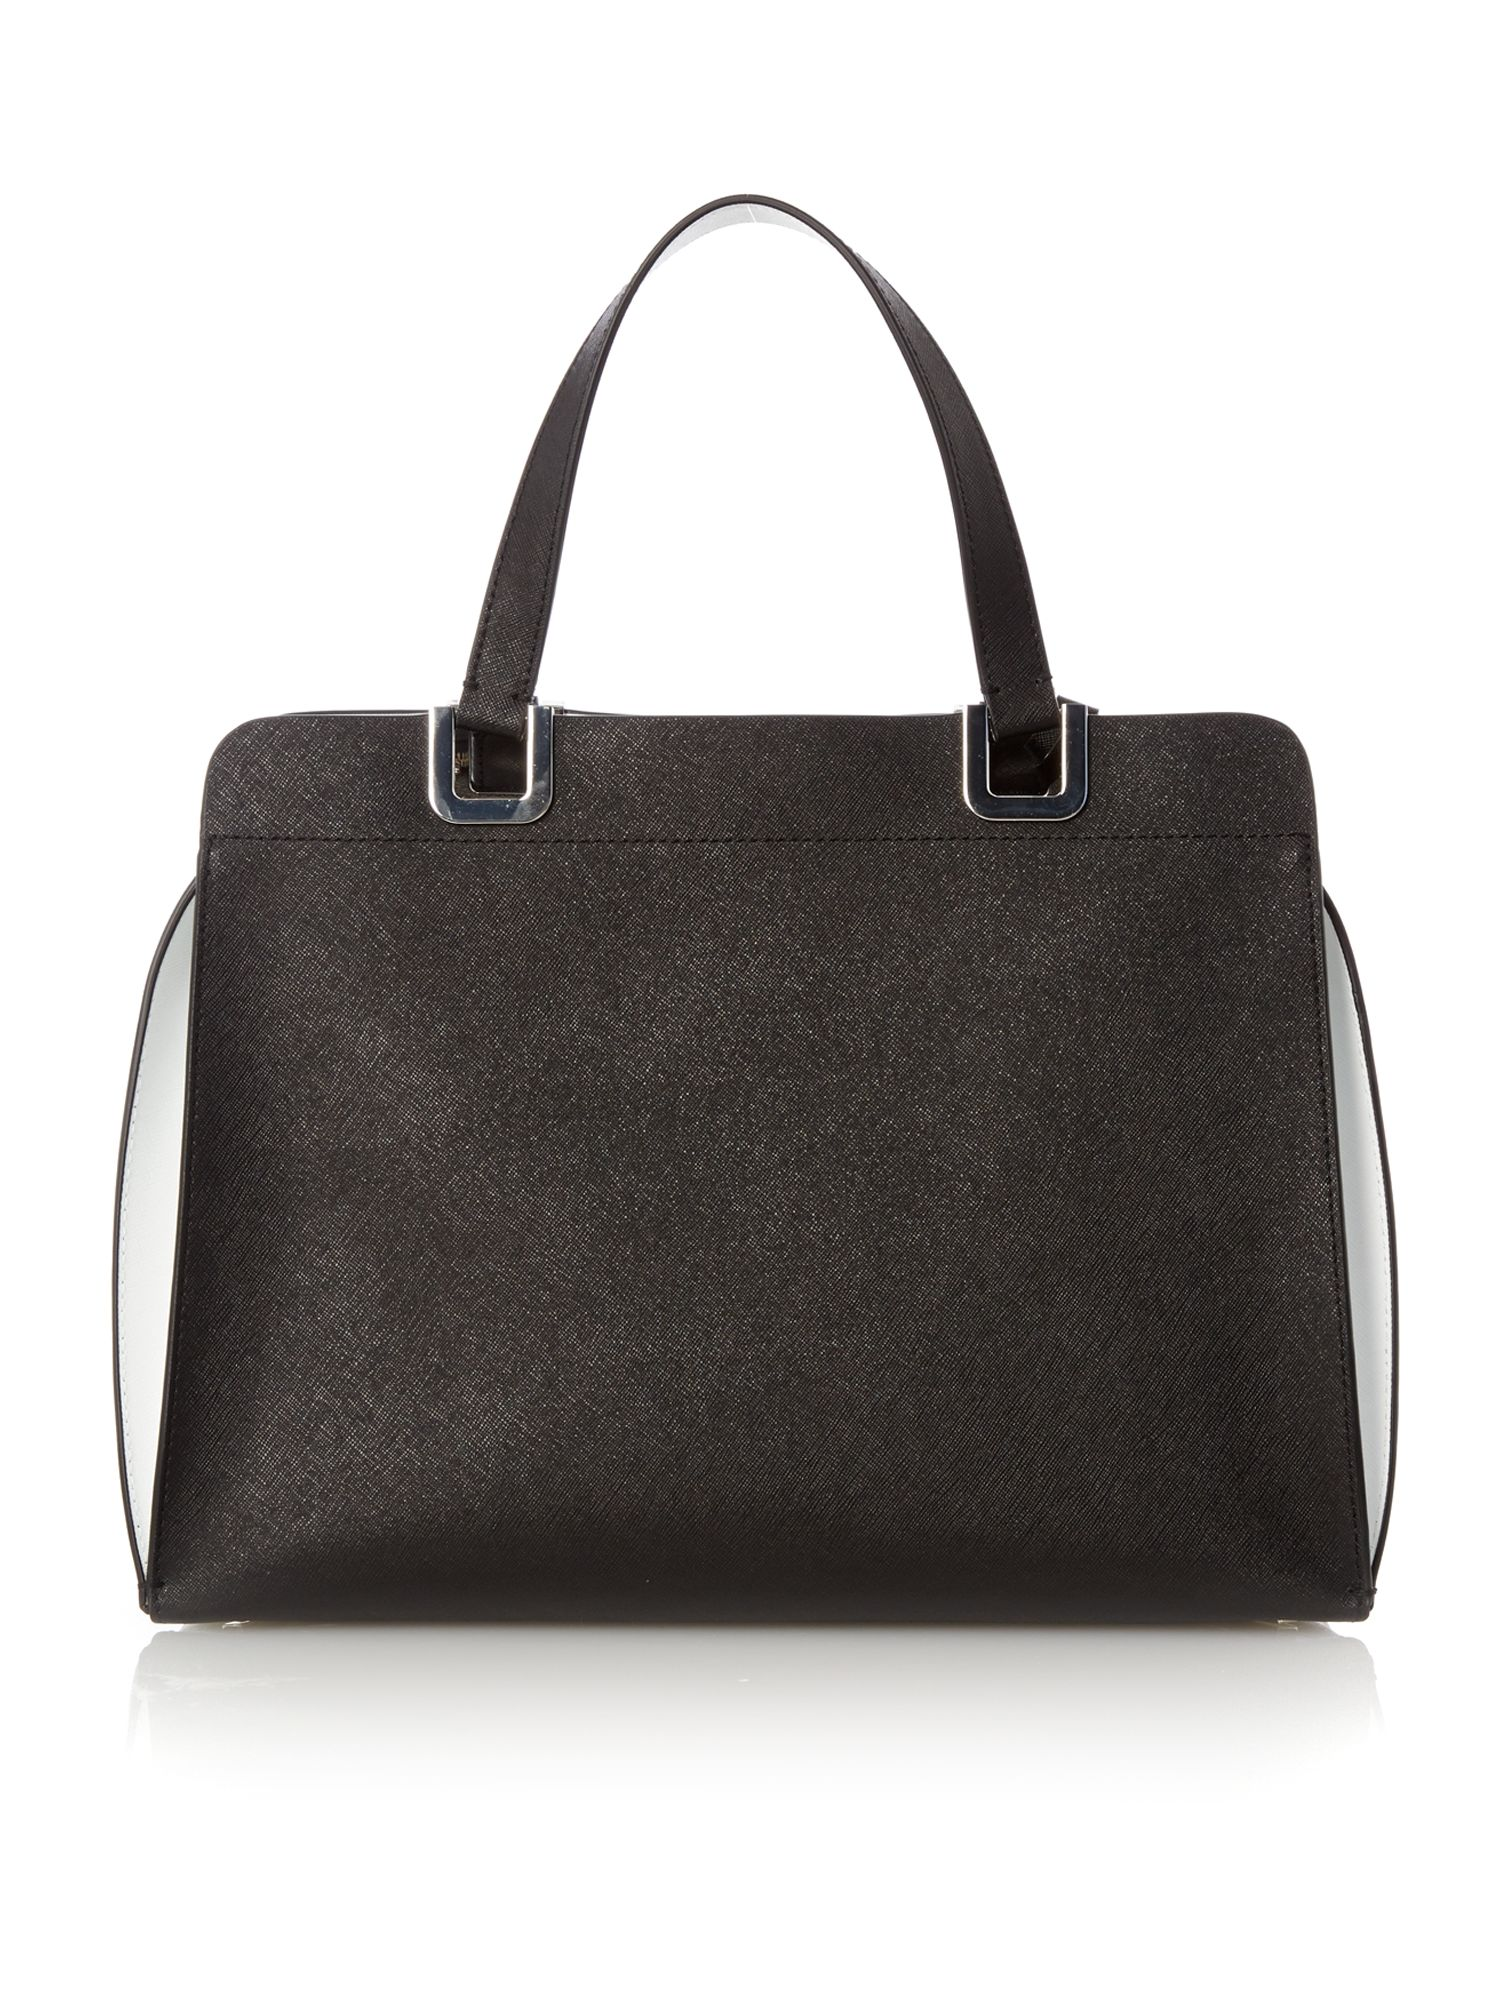 Sofie black large bowling bag